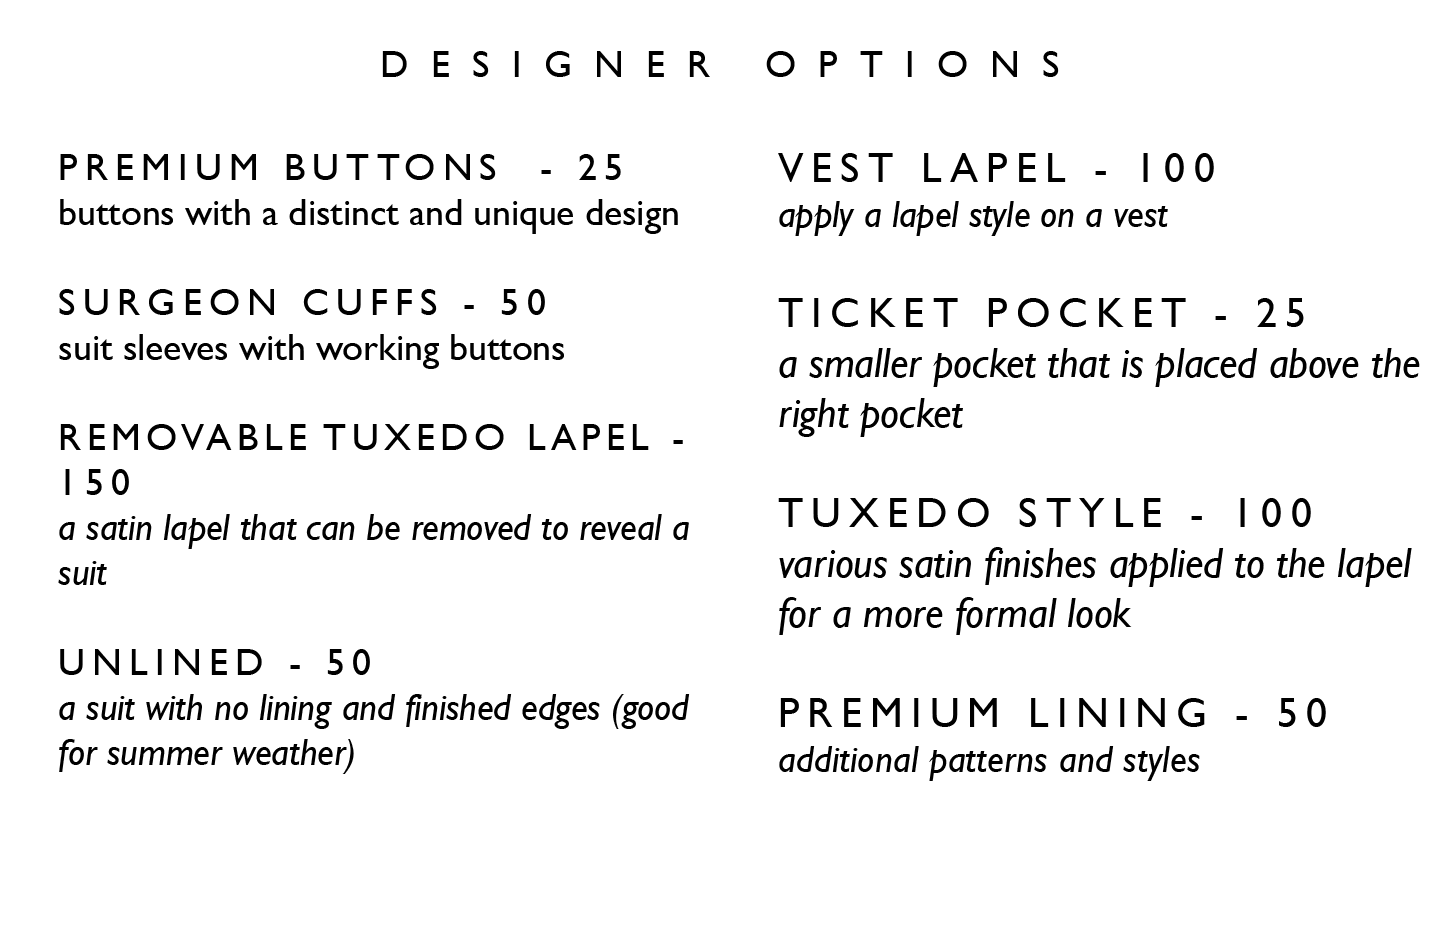 options.png